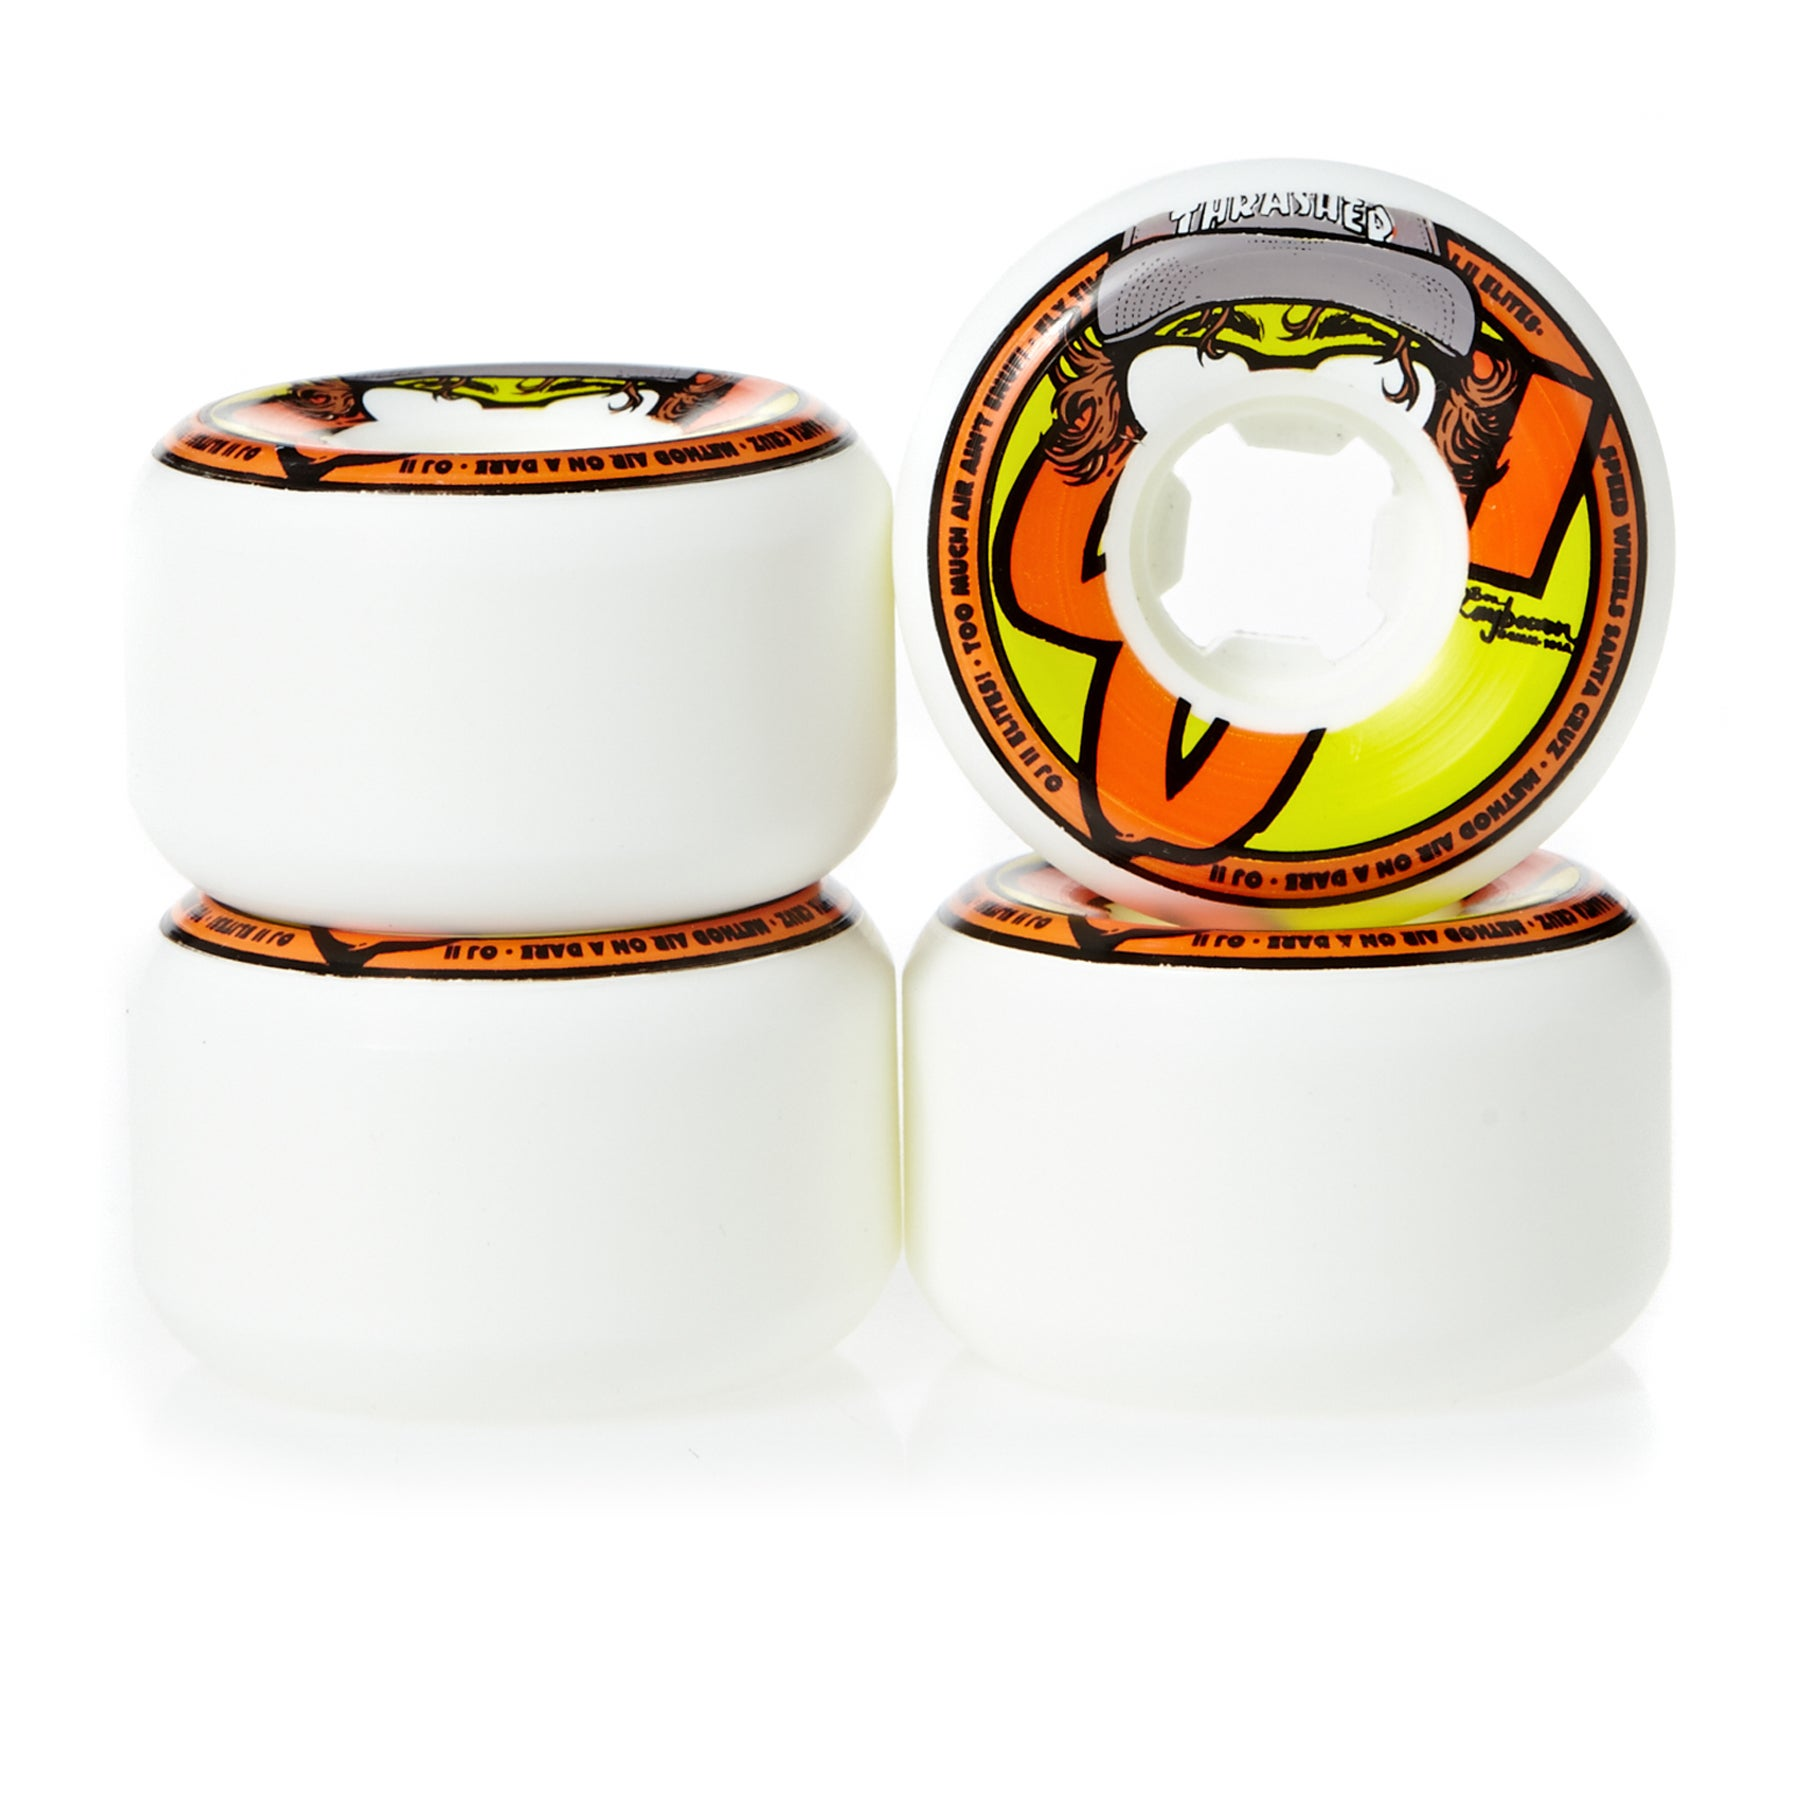 Ruedas de patinete OJ Hard Line Raybourn Insaneathane 101a 54mm Set of 4 - White